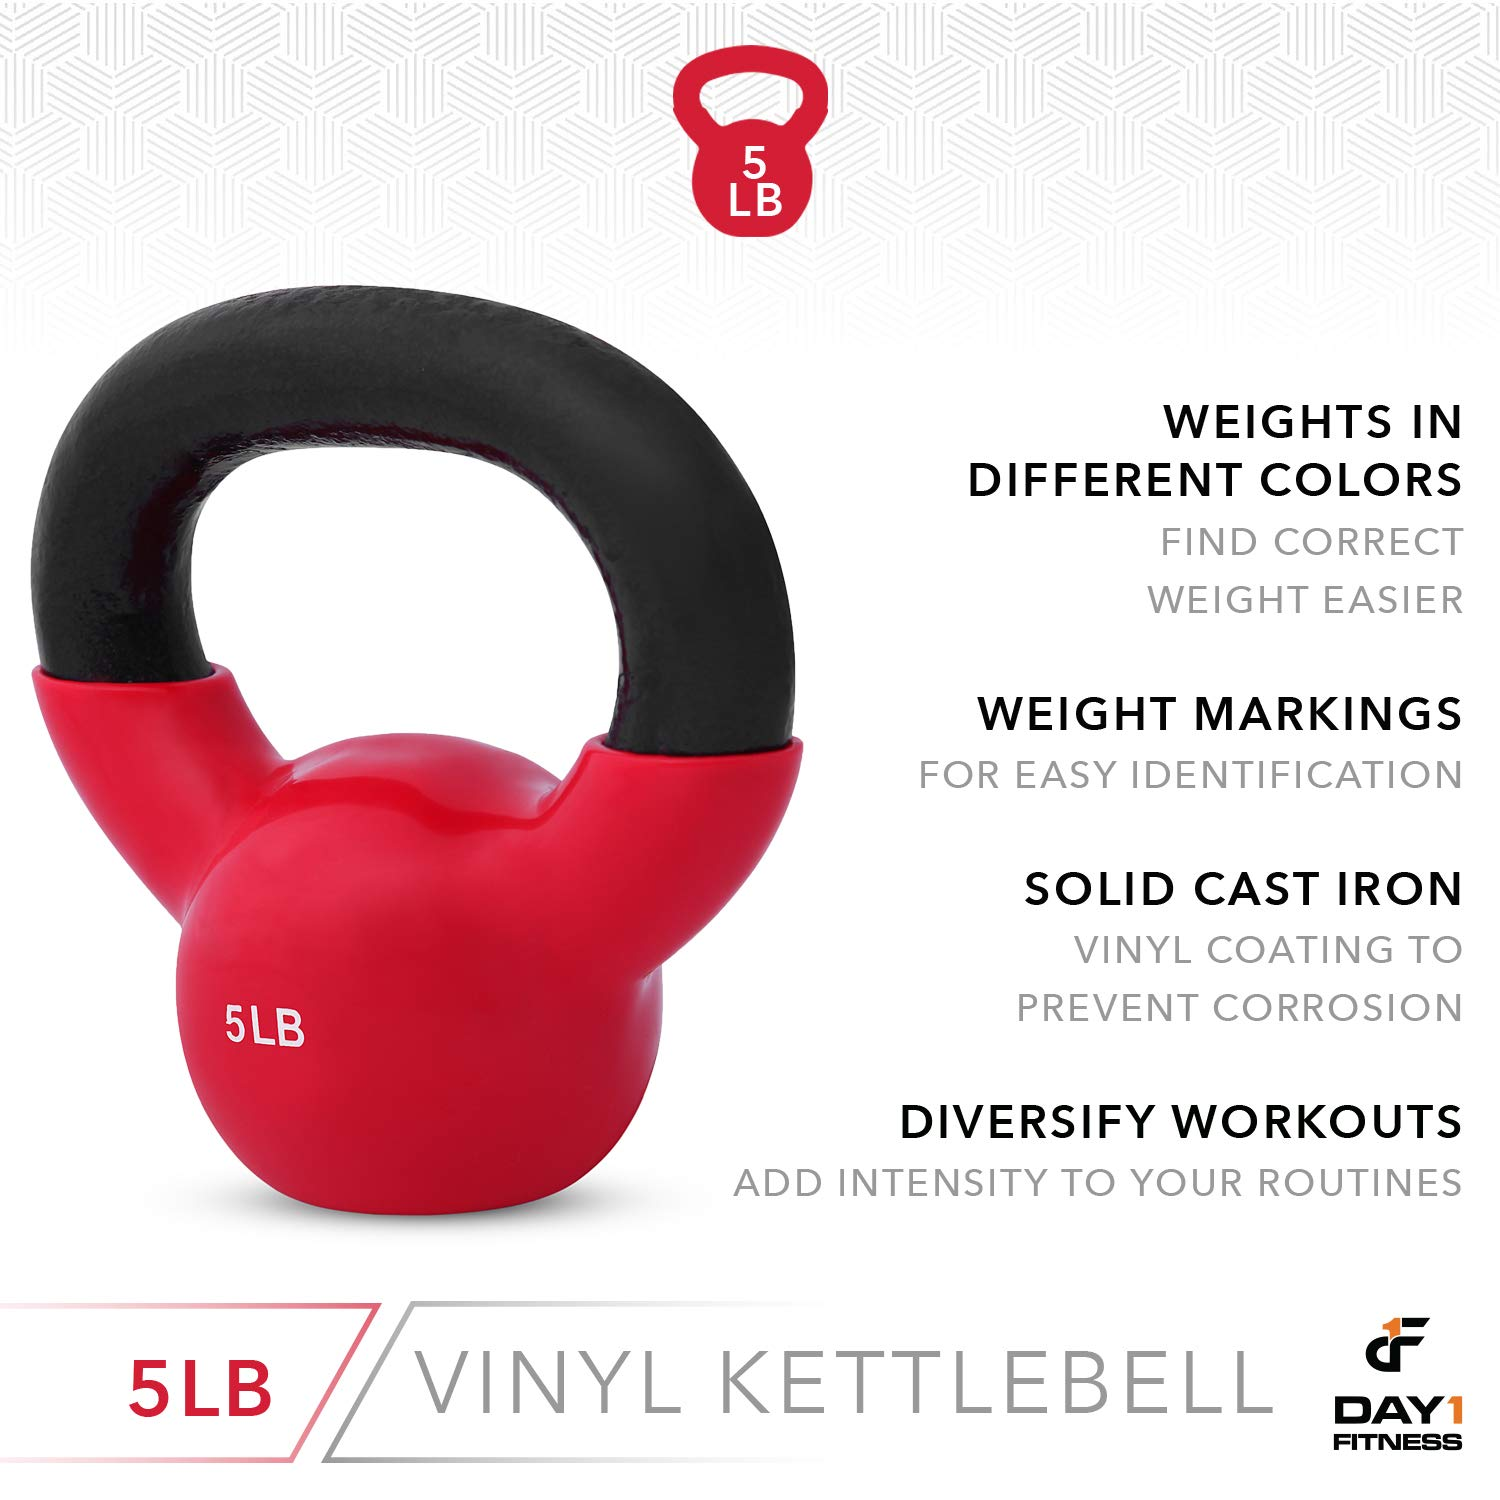 Day 1 Fitness Kettlebell Weights Vinyl Coated Iron 5 Pounds - Coated for Floor and Equipment Protection, Noise Reduction - Free Weights for Ballistic, Core, Weight Training by Day 1 Fitness (Image #5)